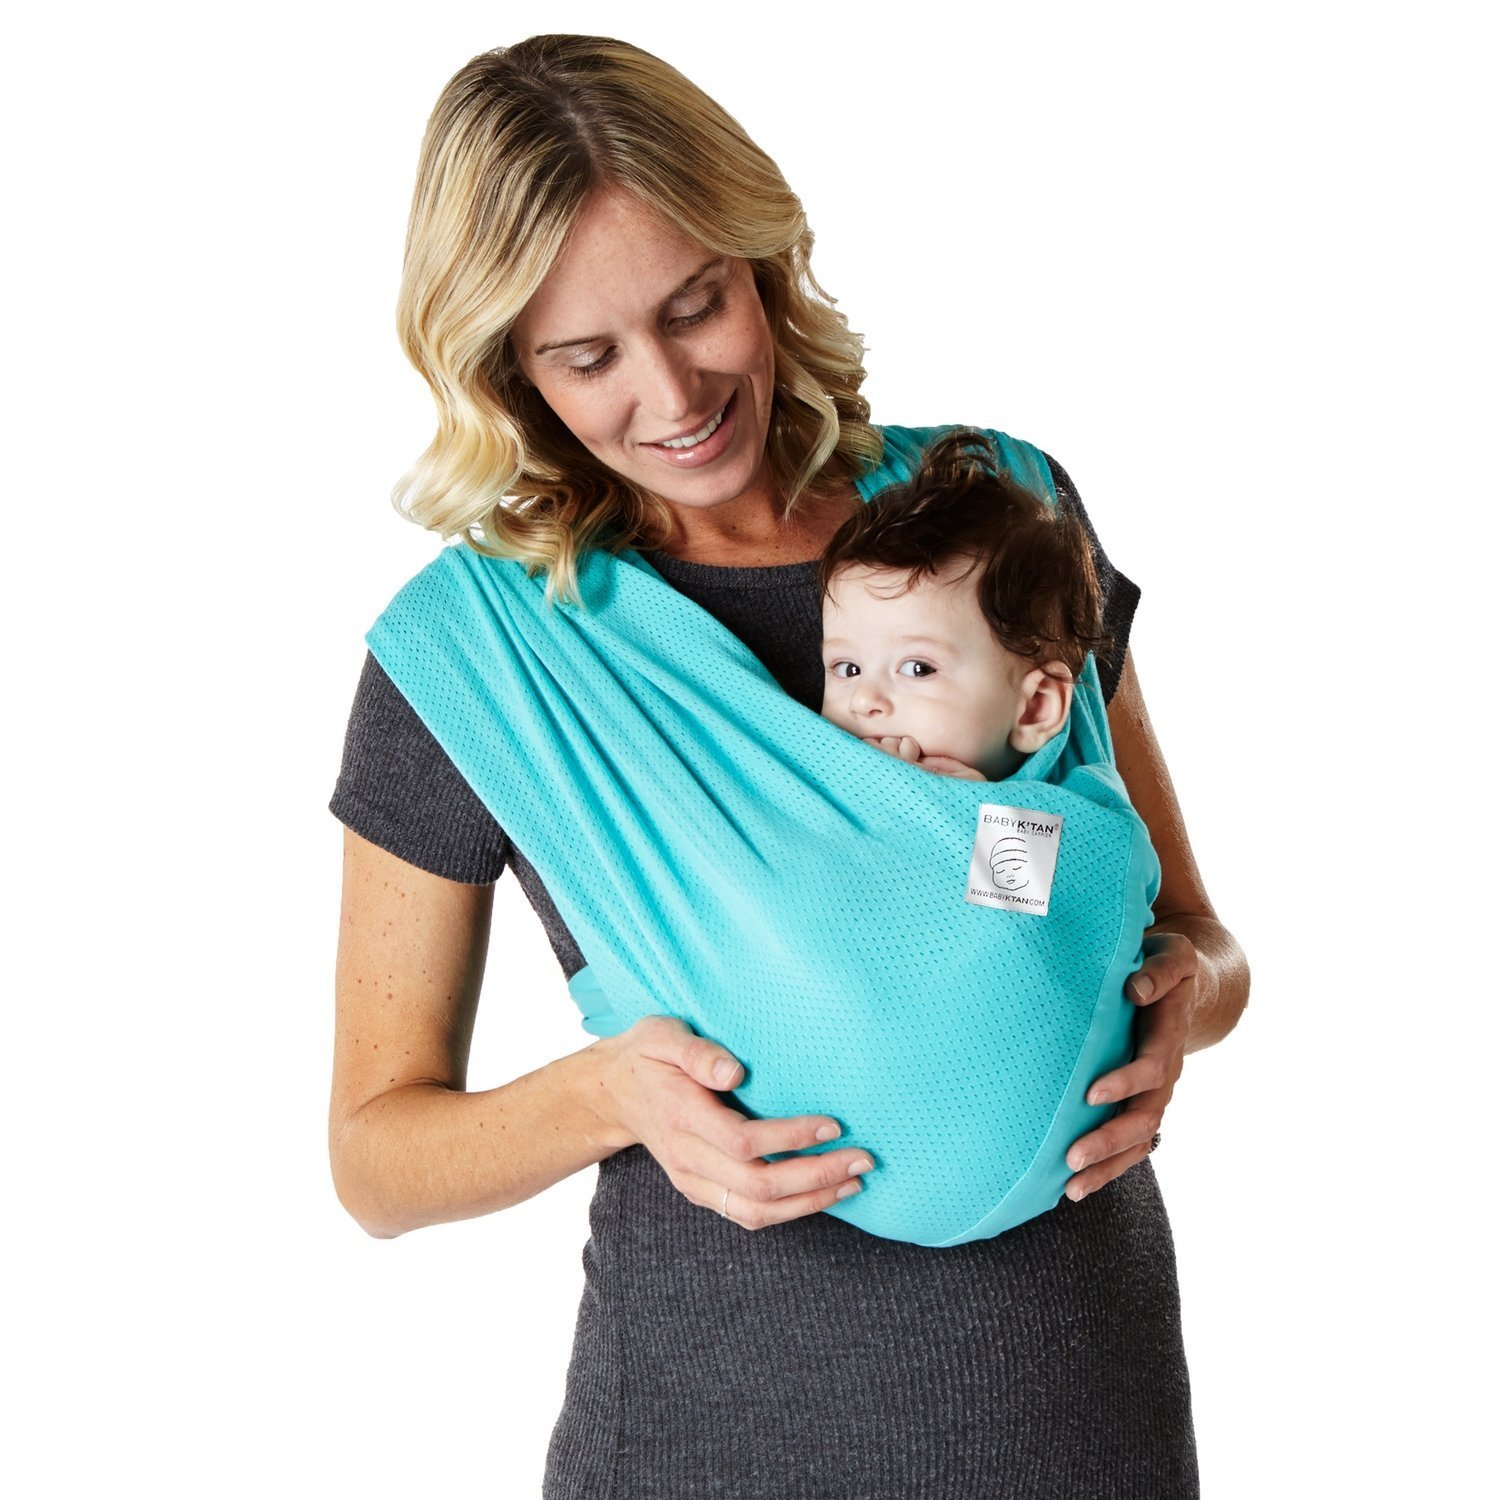 X-Large Charcoal Baby Ktan Breeze Baby Carrier